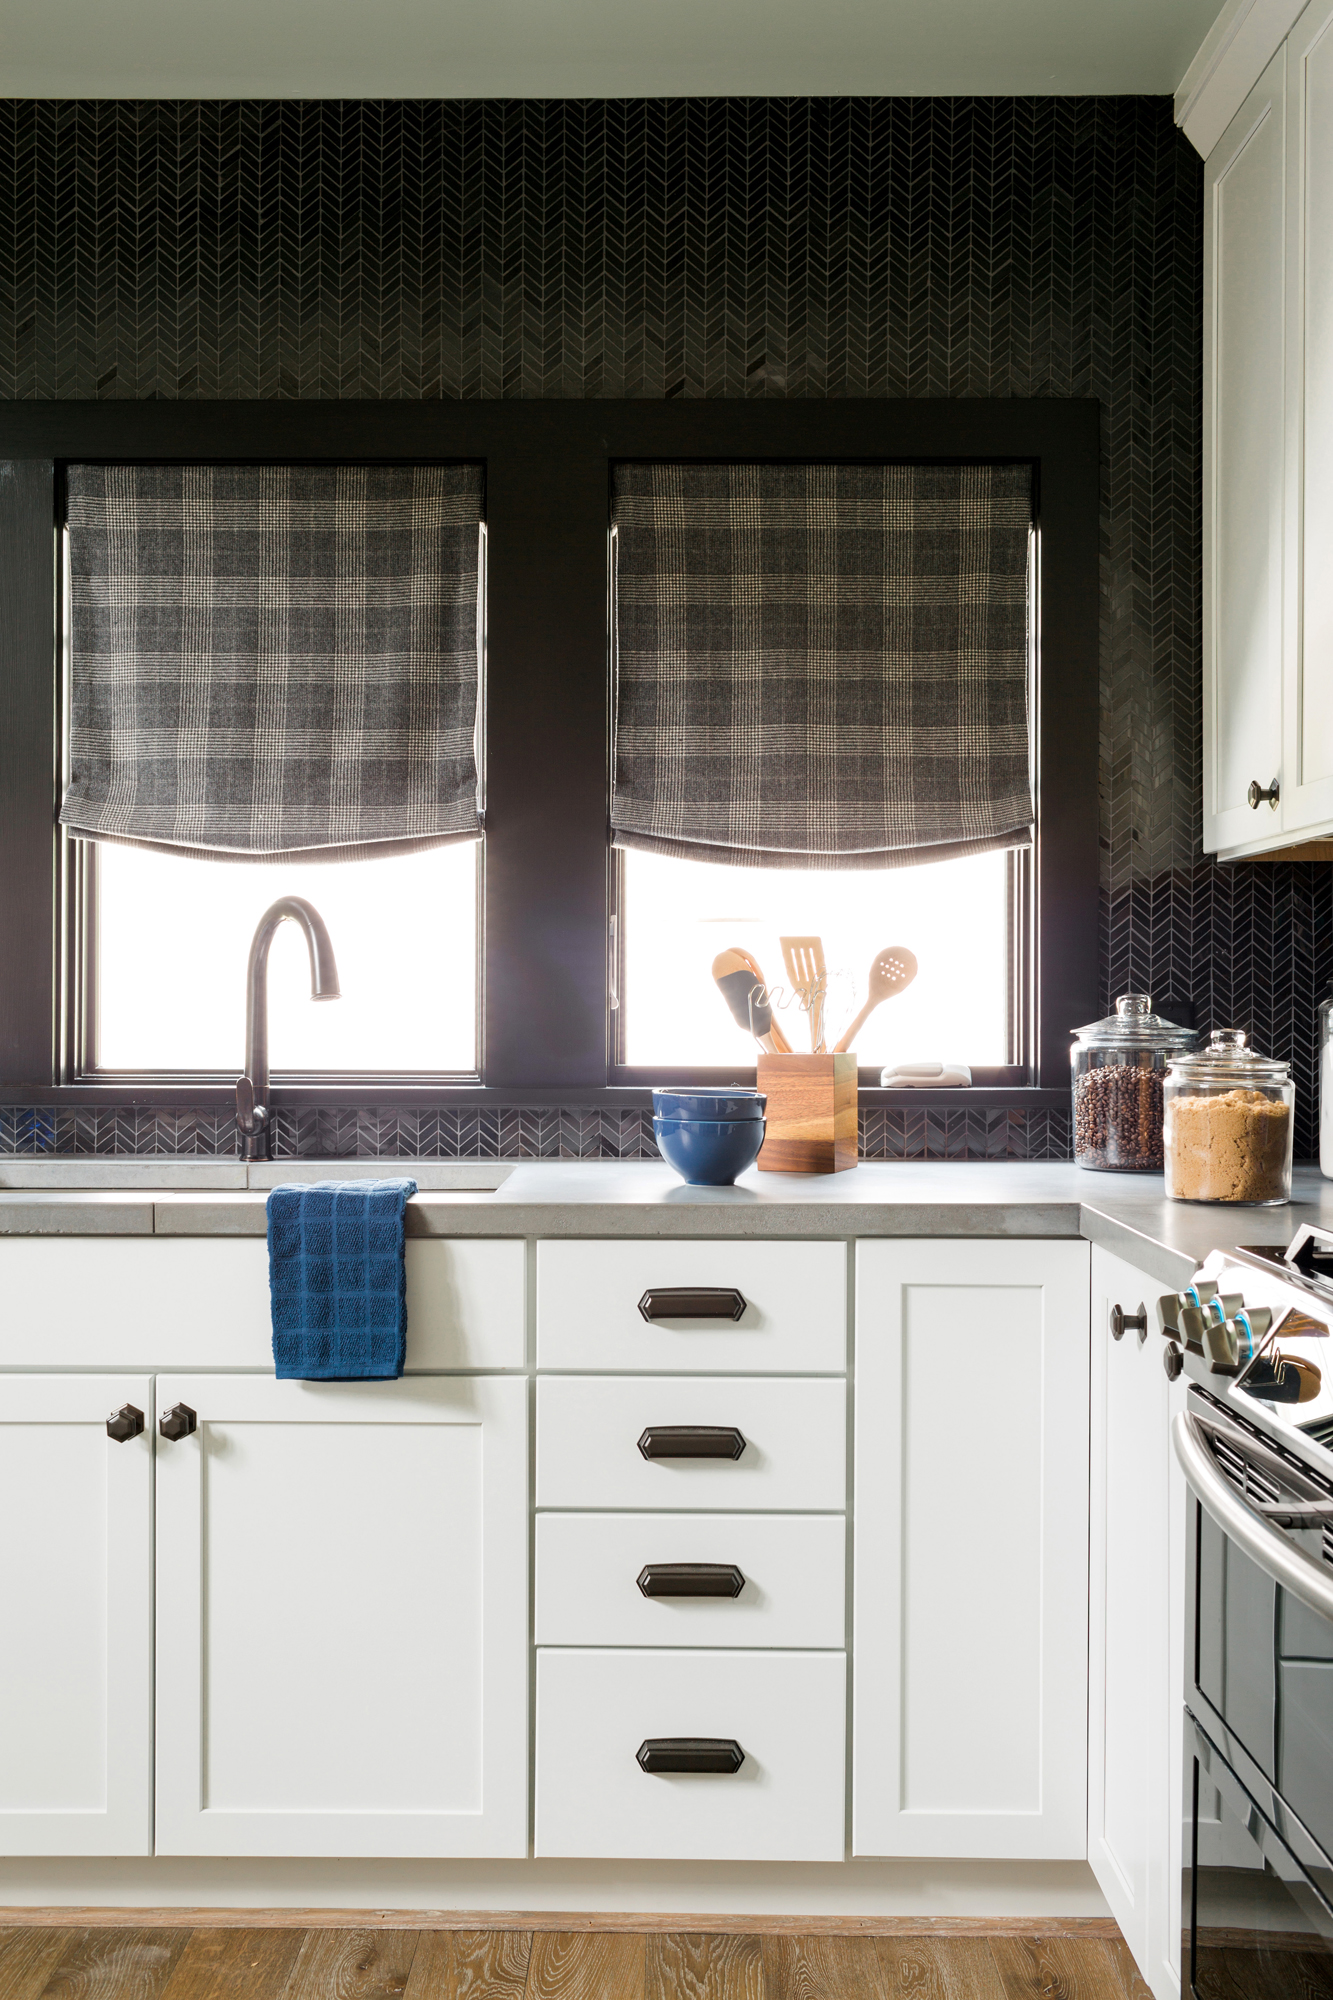 Sensate® faucet   Prolific® kitchen sink     White lower cabinets have an expansive effect on the space, while a black chevron backsplash adds an element of luxury. An oil-rubbed bronze faucet blends seamlessly with the dark wall.